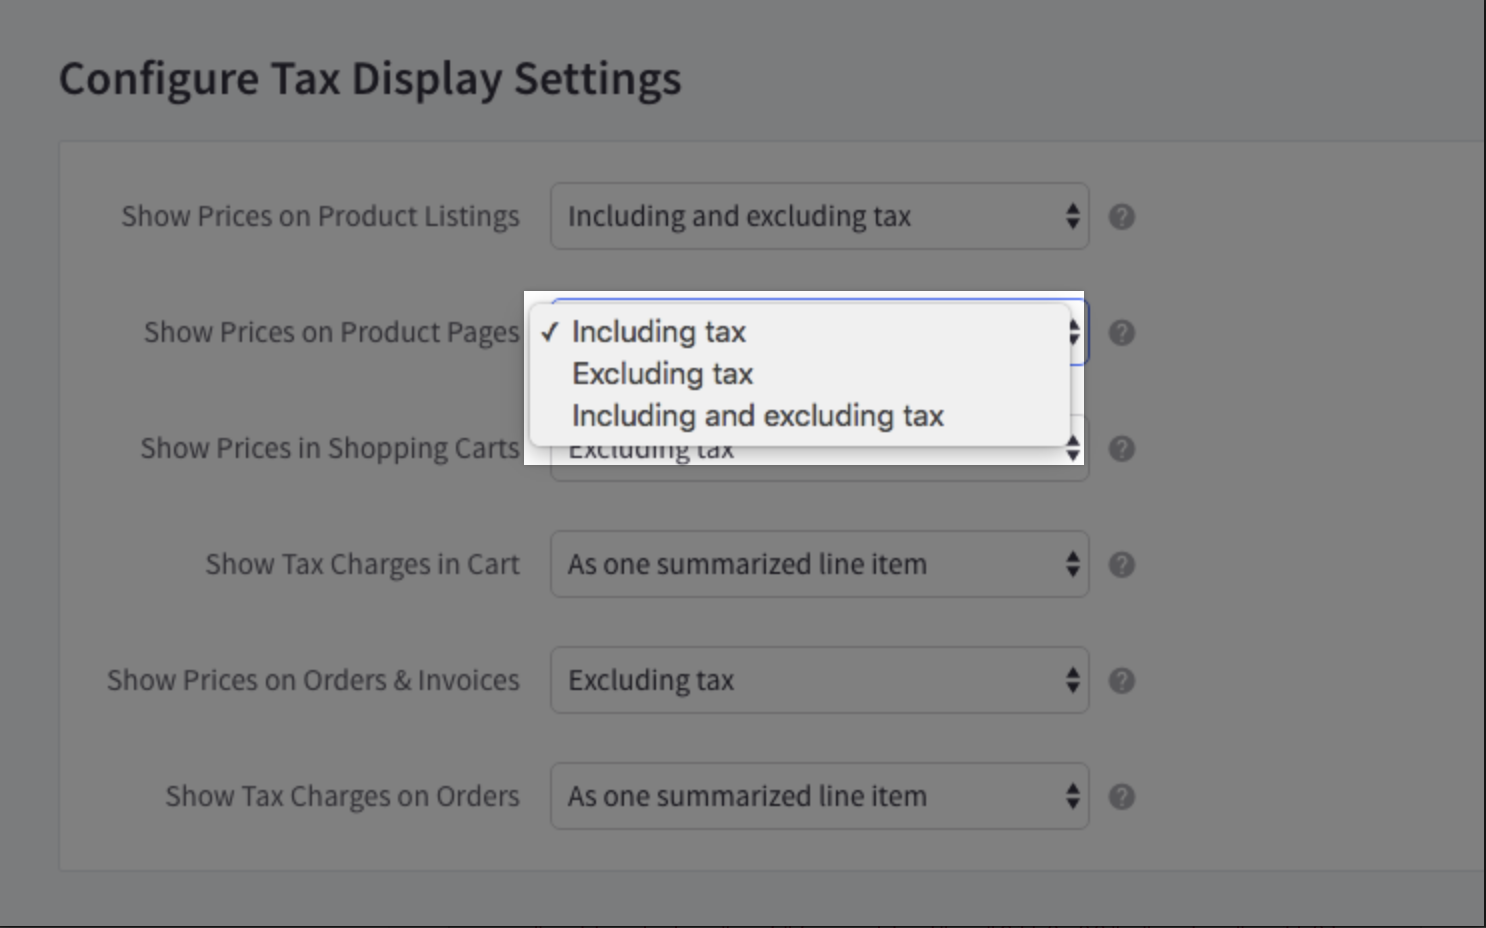 #### Configure Tax Display Settings